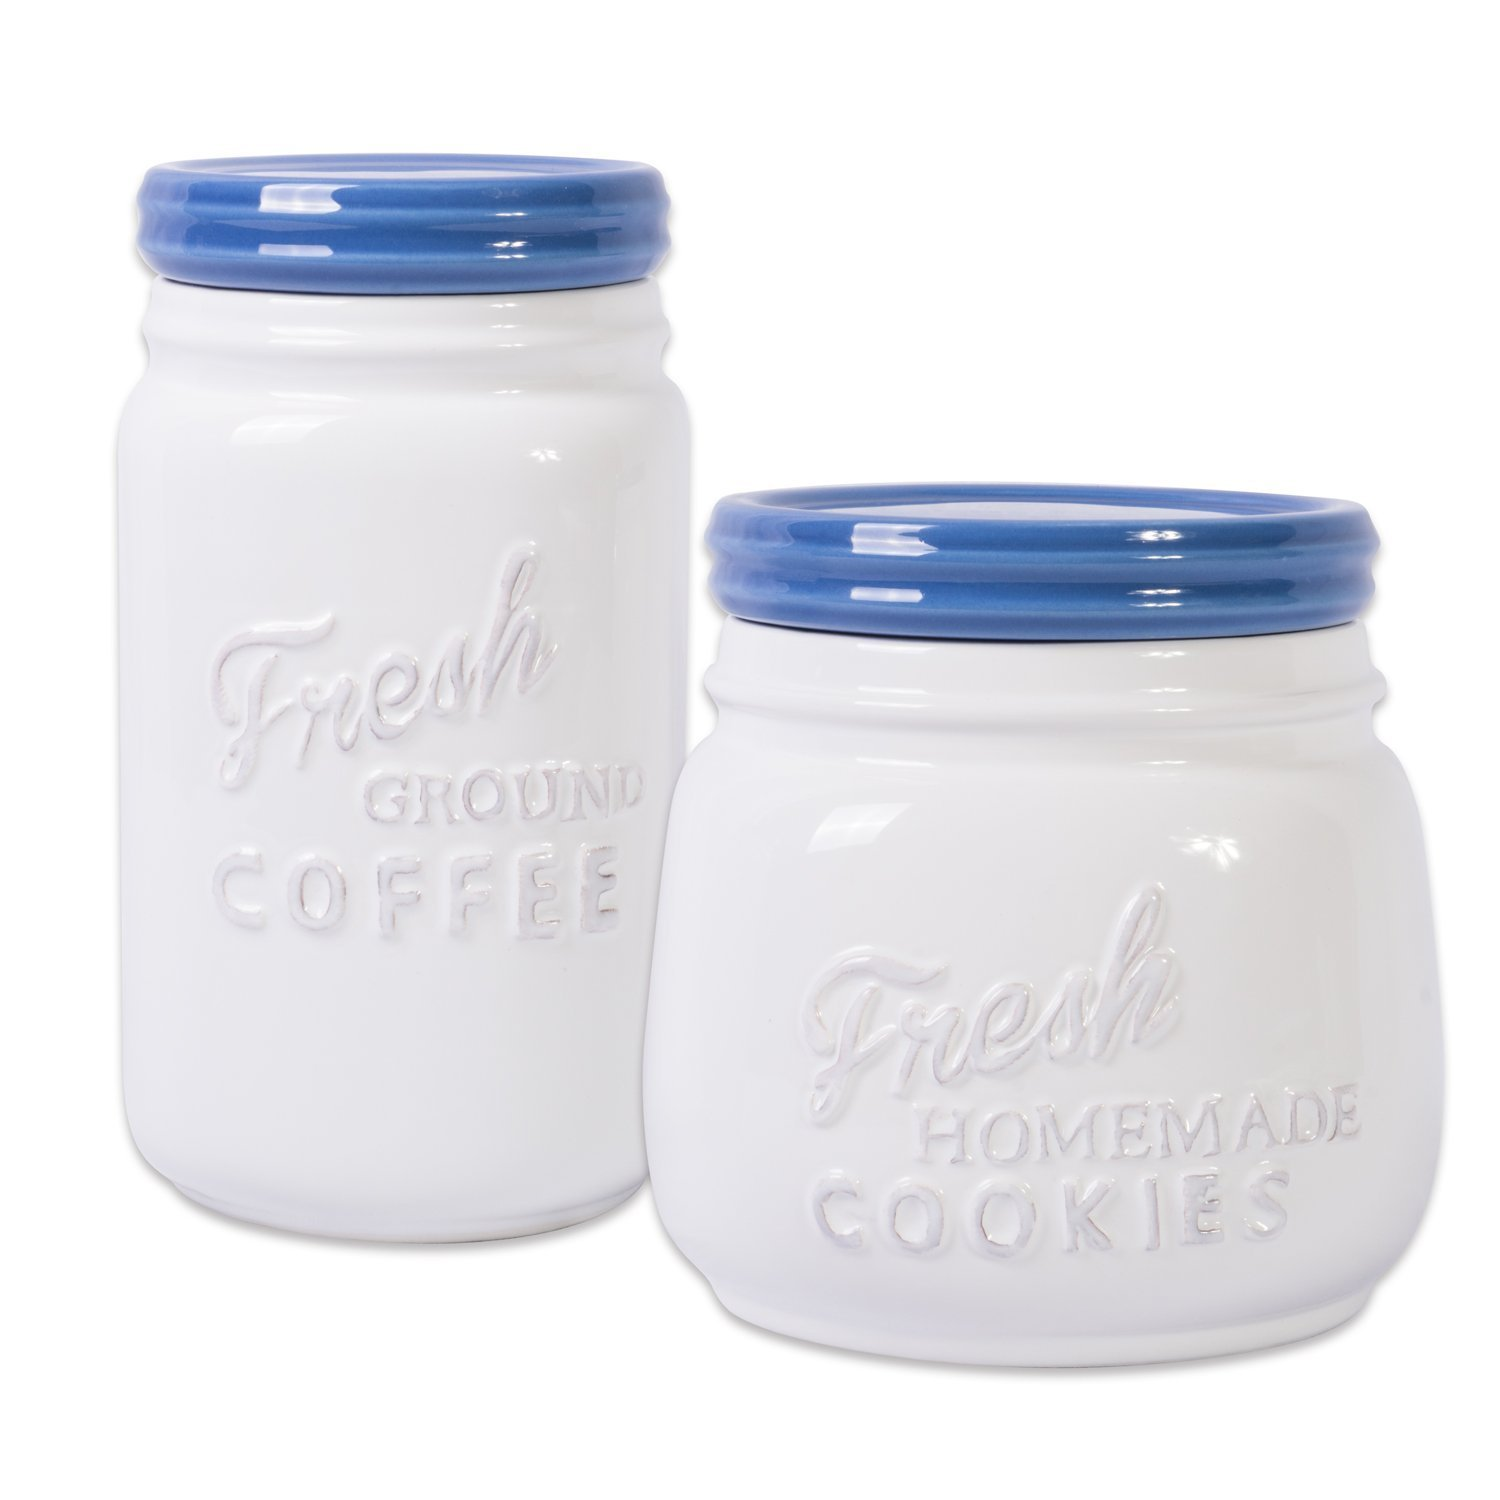 DII Ceramic Kitchen Containers, Set of 2 Blueberry, Cookie Jar & Coffee Canister